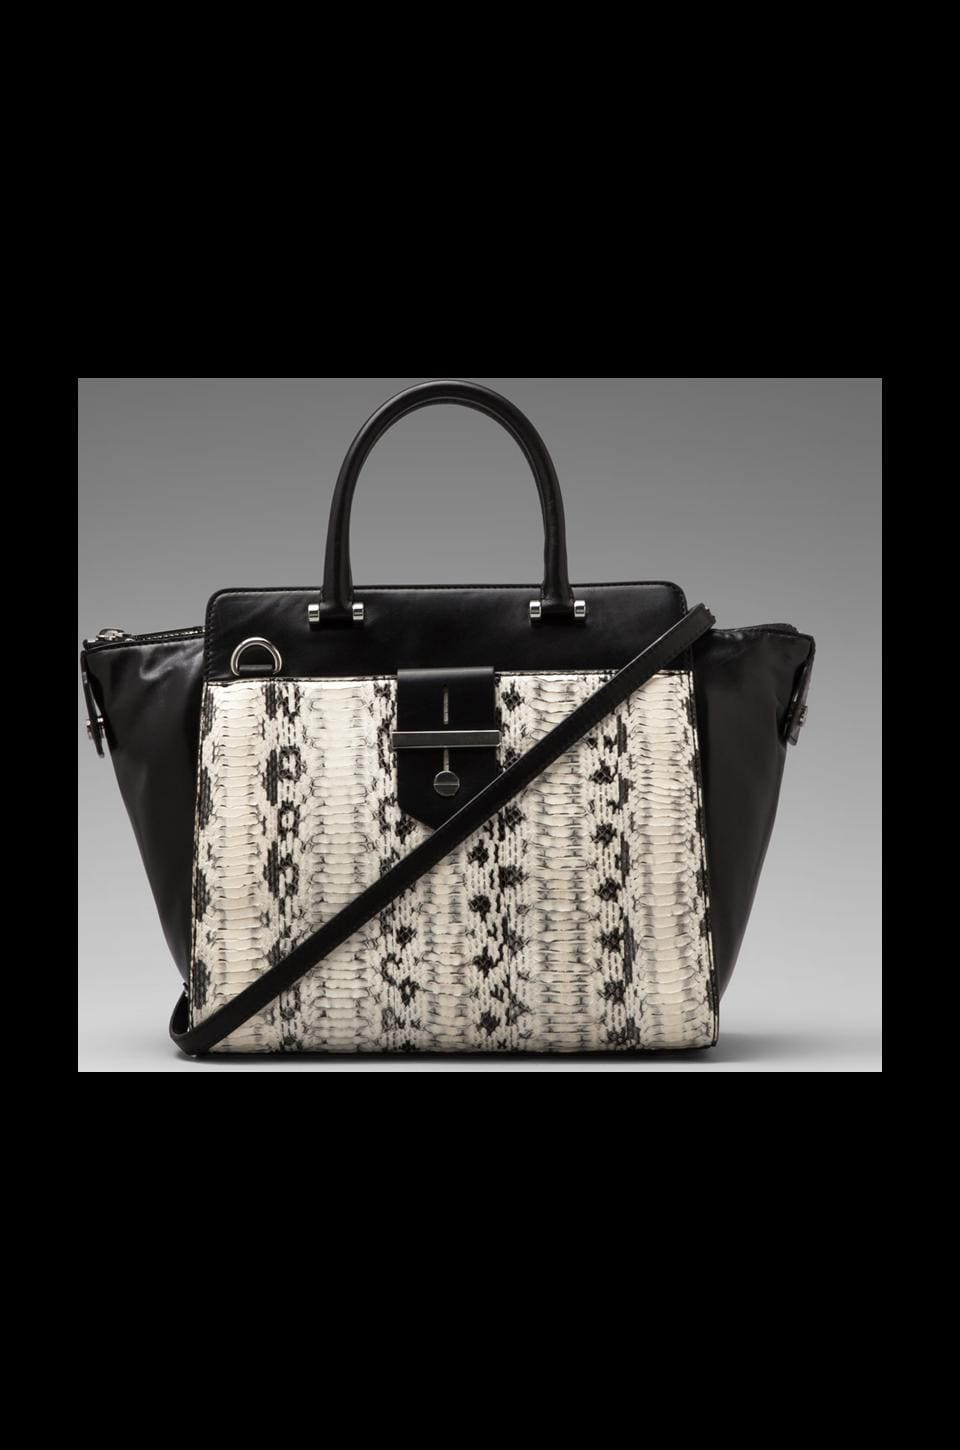 MILLY Makenna Watersnake Collection Tote in Black/White